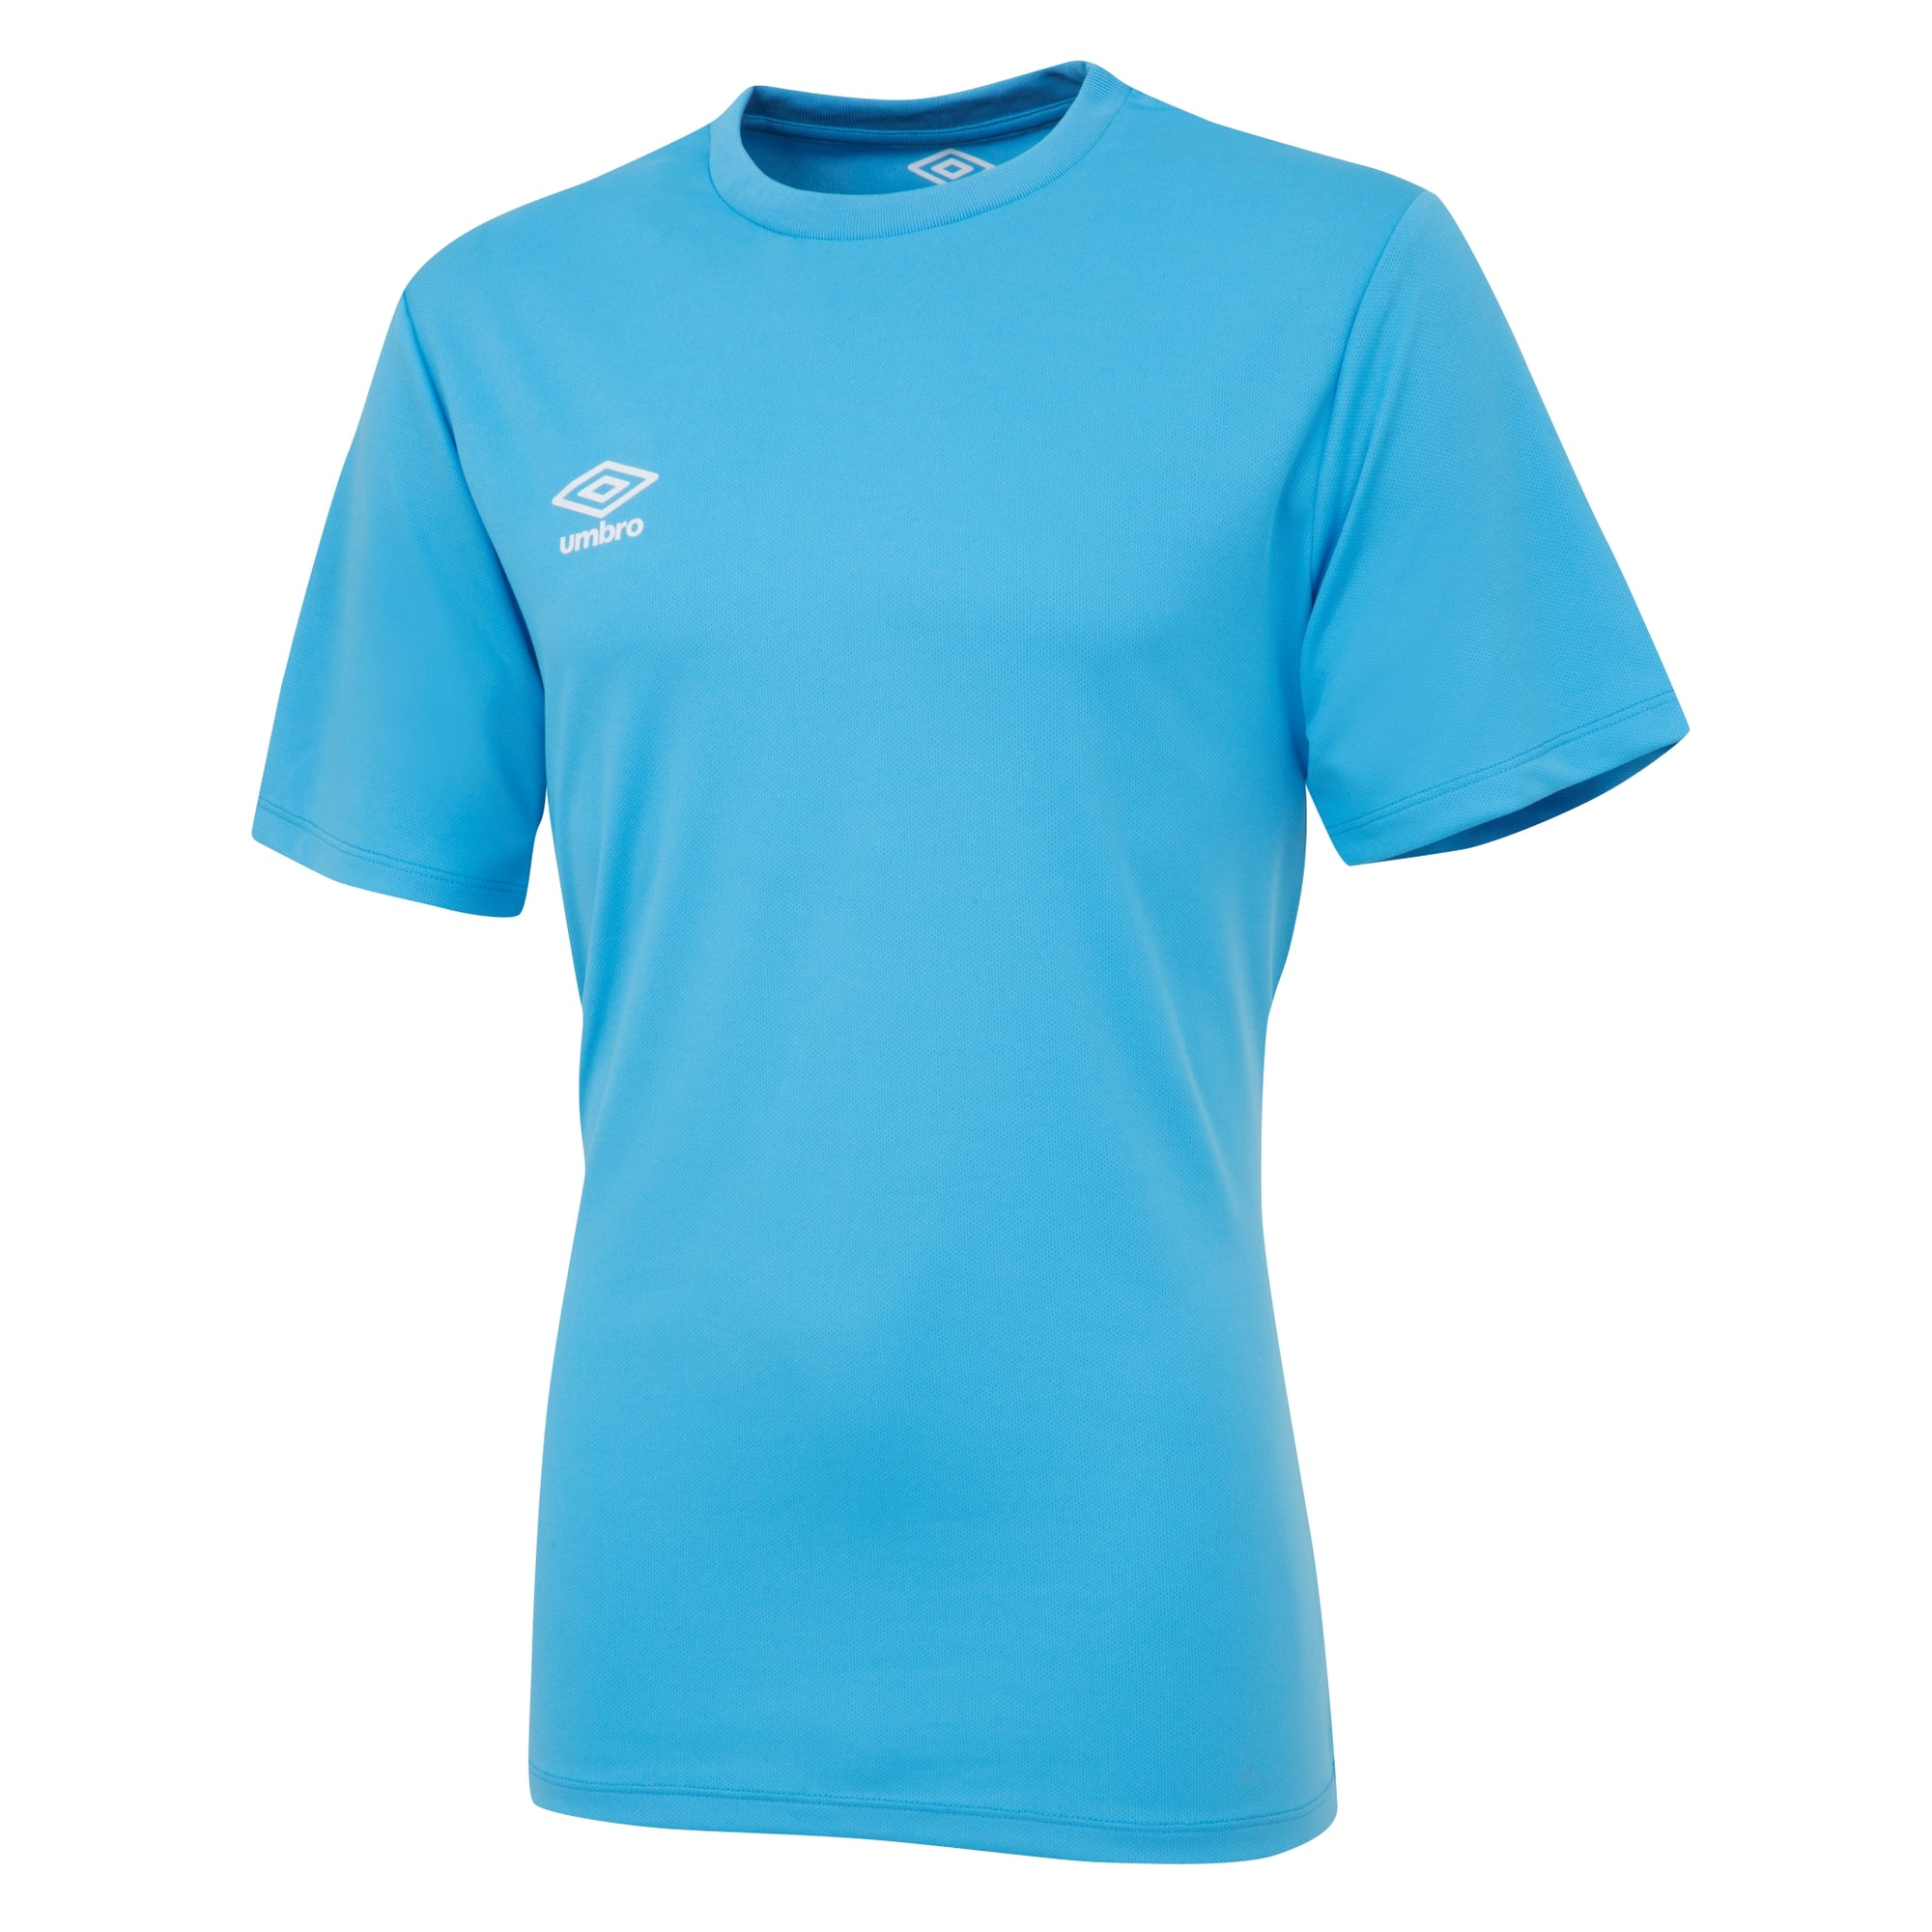 Umbro short sleeve club jersey in sky blue with white printed Umbro logo